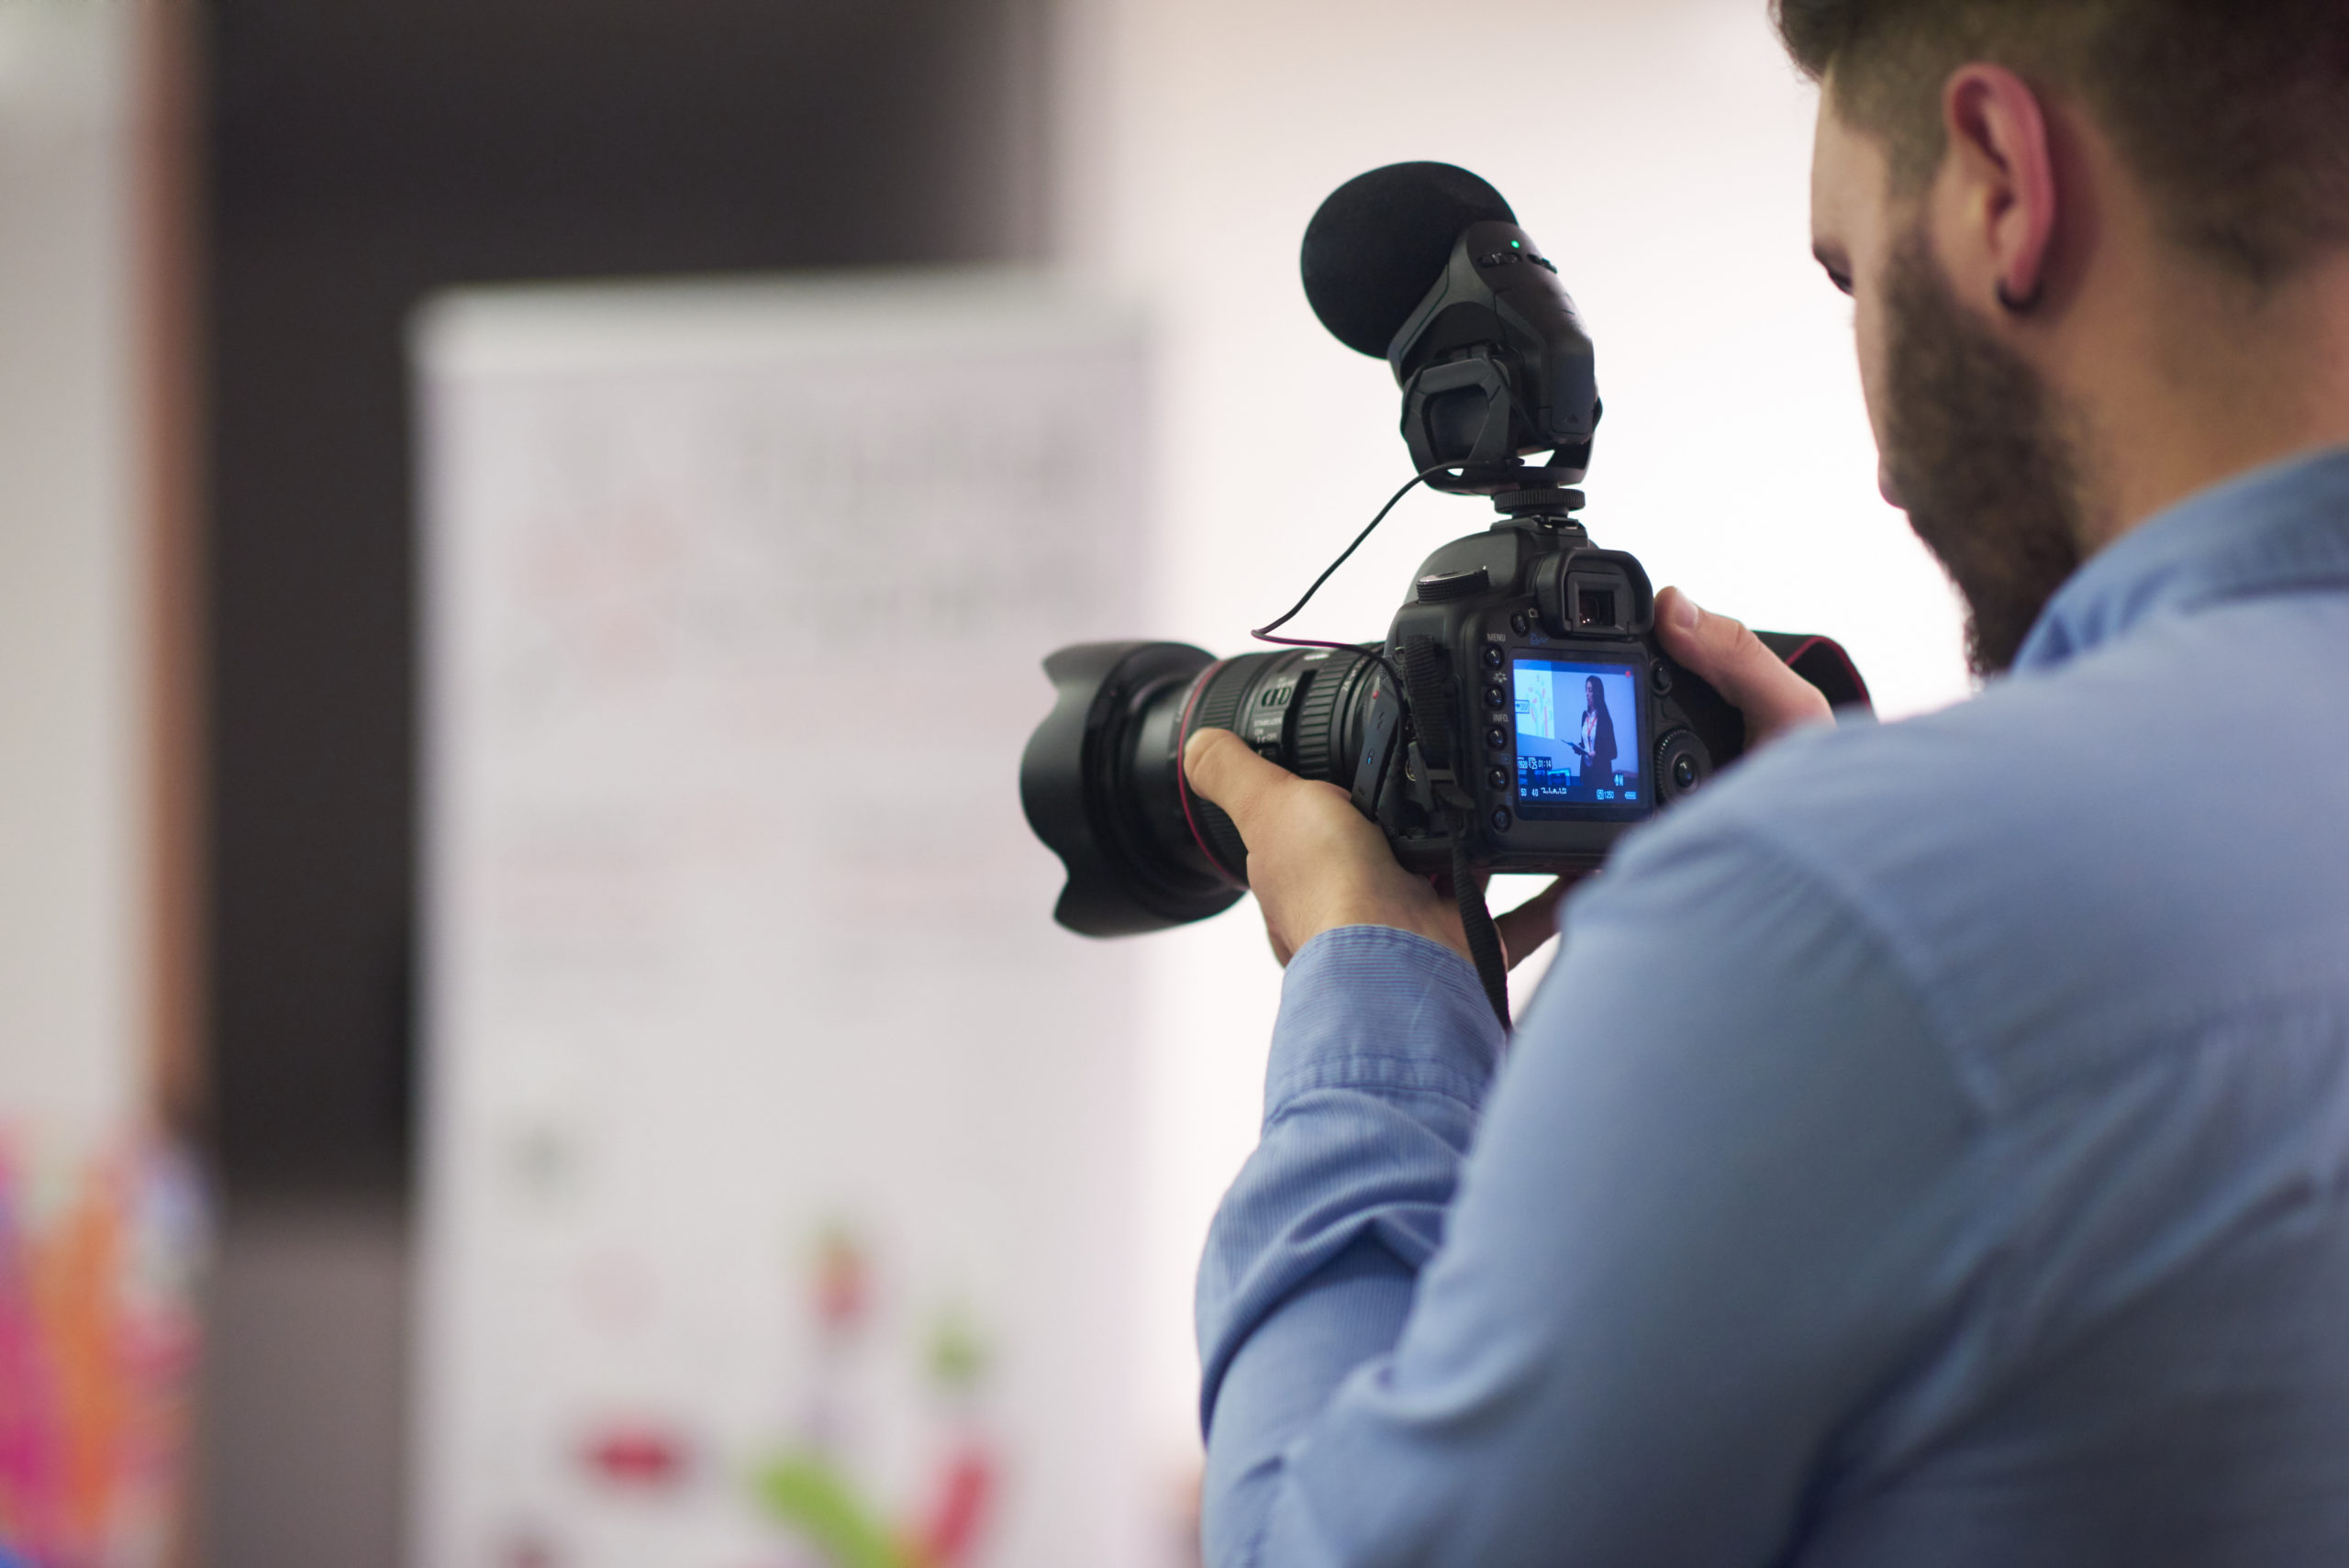 5 Tip to Help Improve Your Video Marketing in 2020